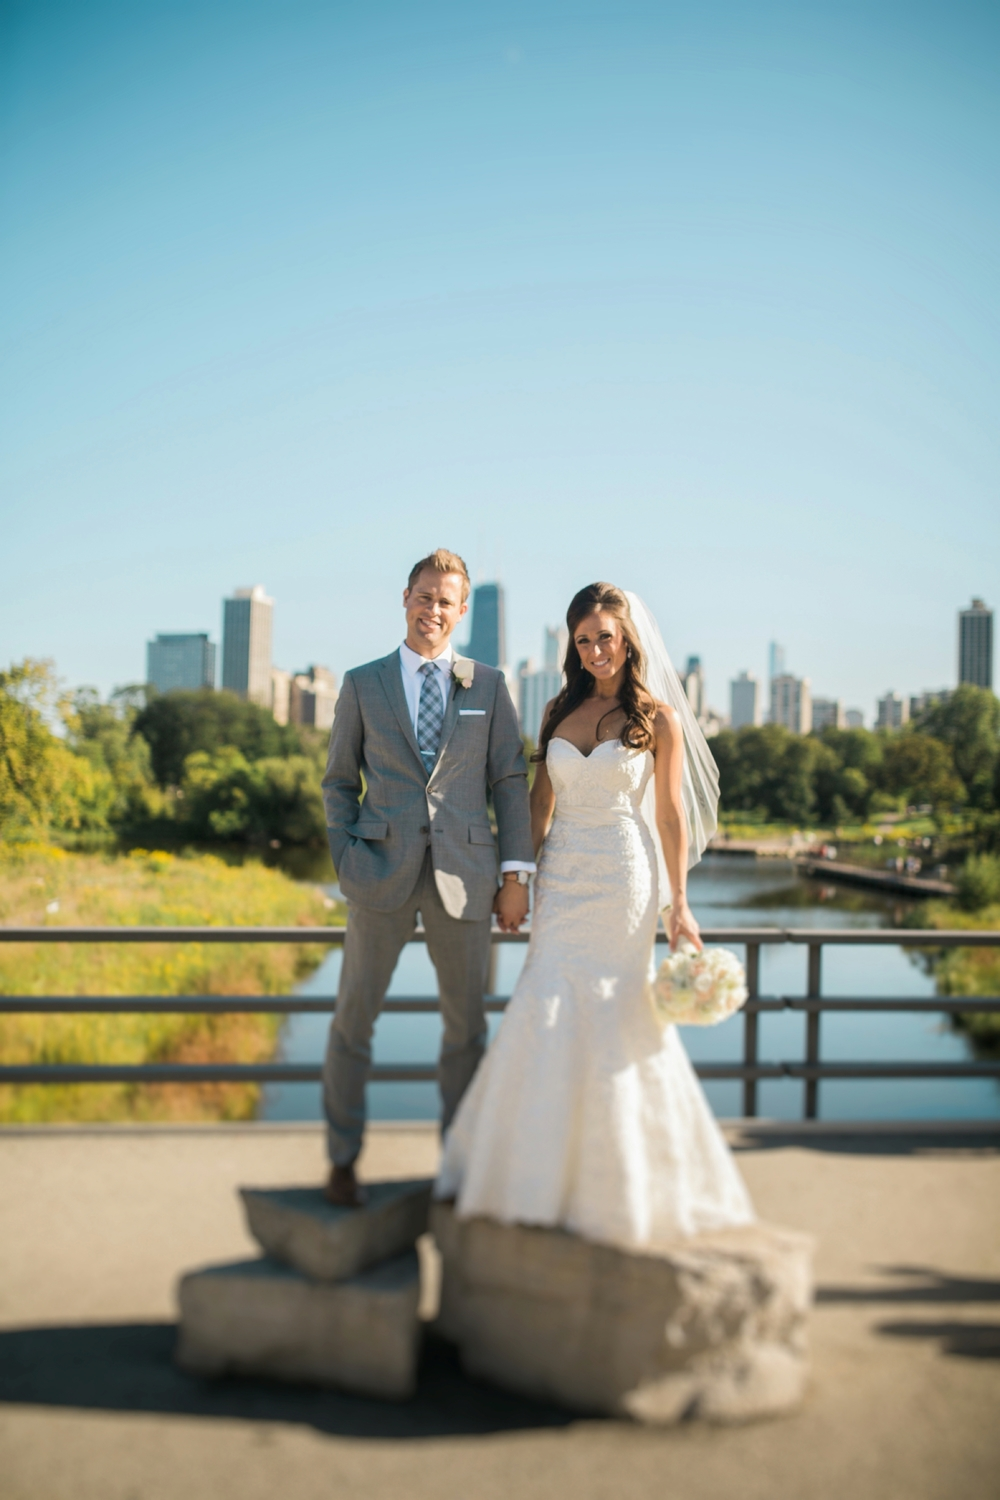 Chicago-Documentary-Wedding-025.JPG